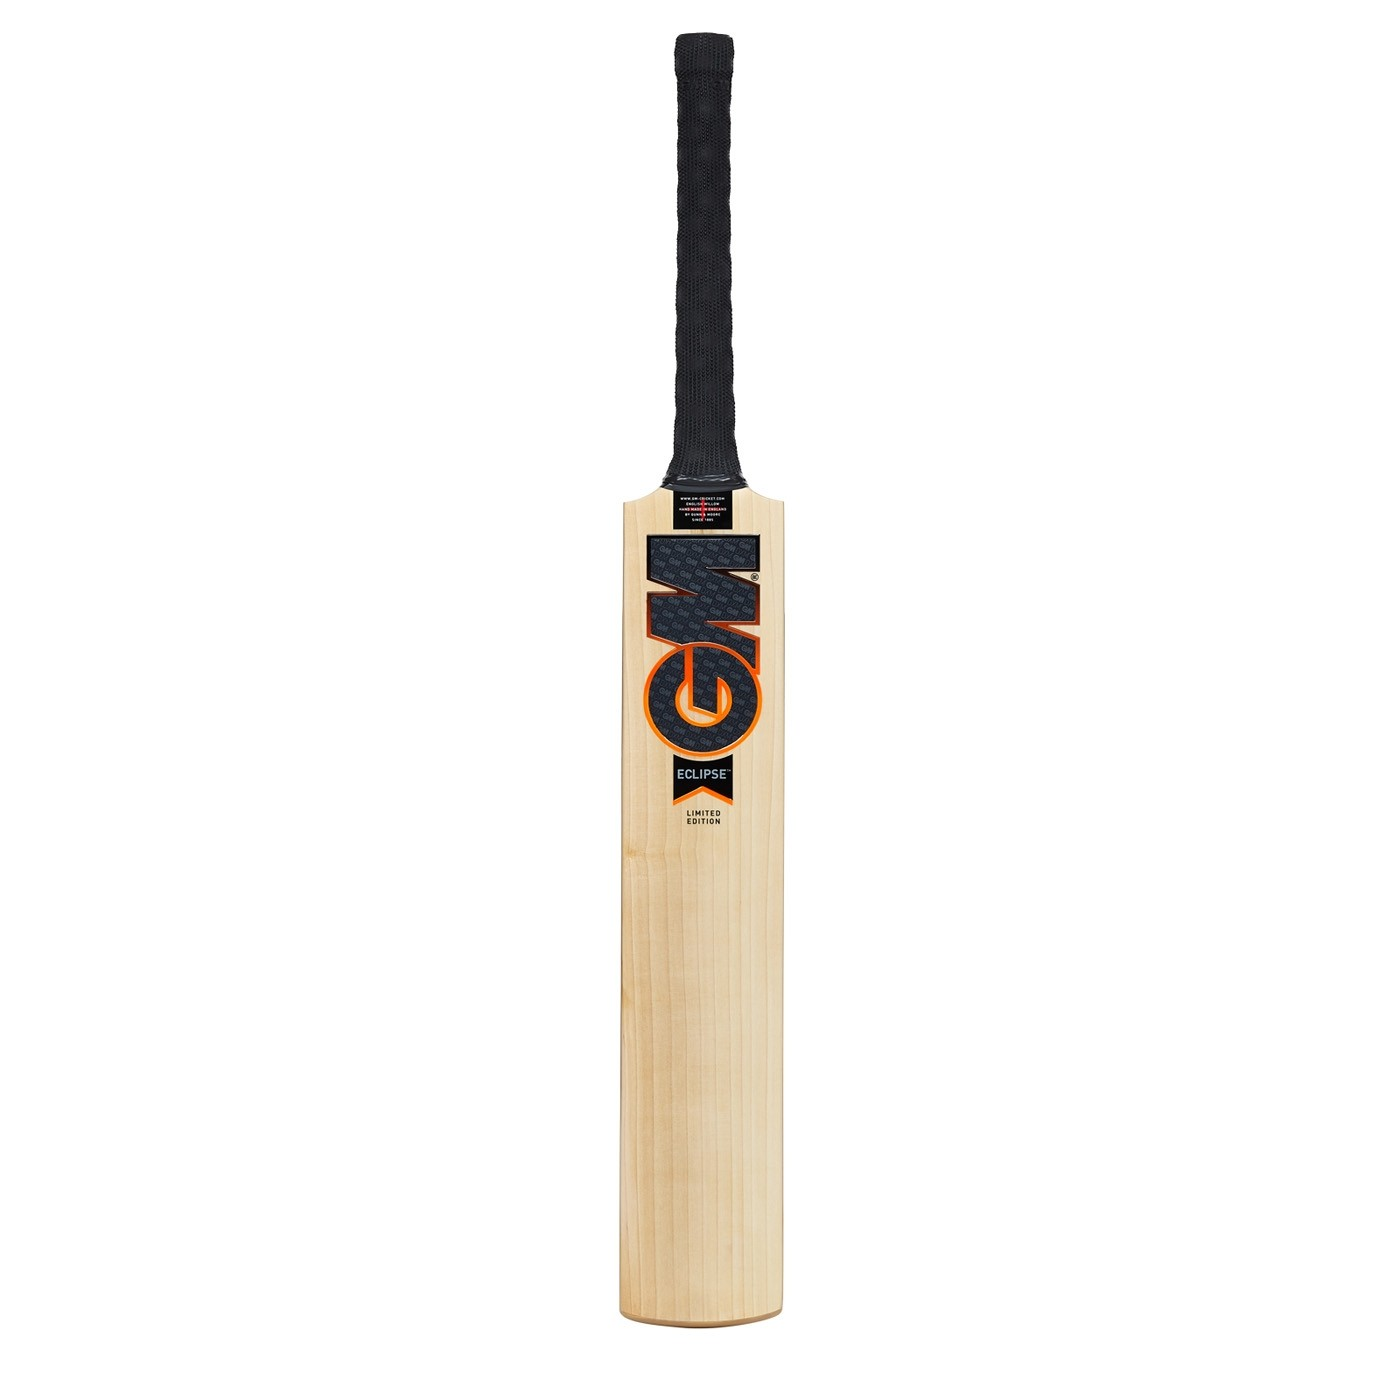 2021 Gunn and Moore Eclipse DXM 808 Cricket Bat